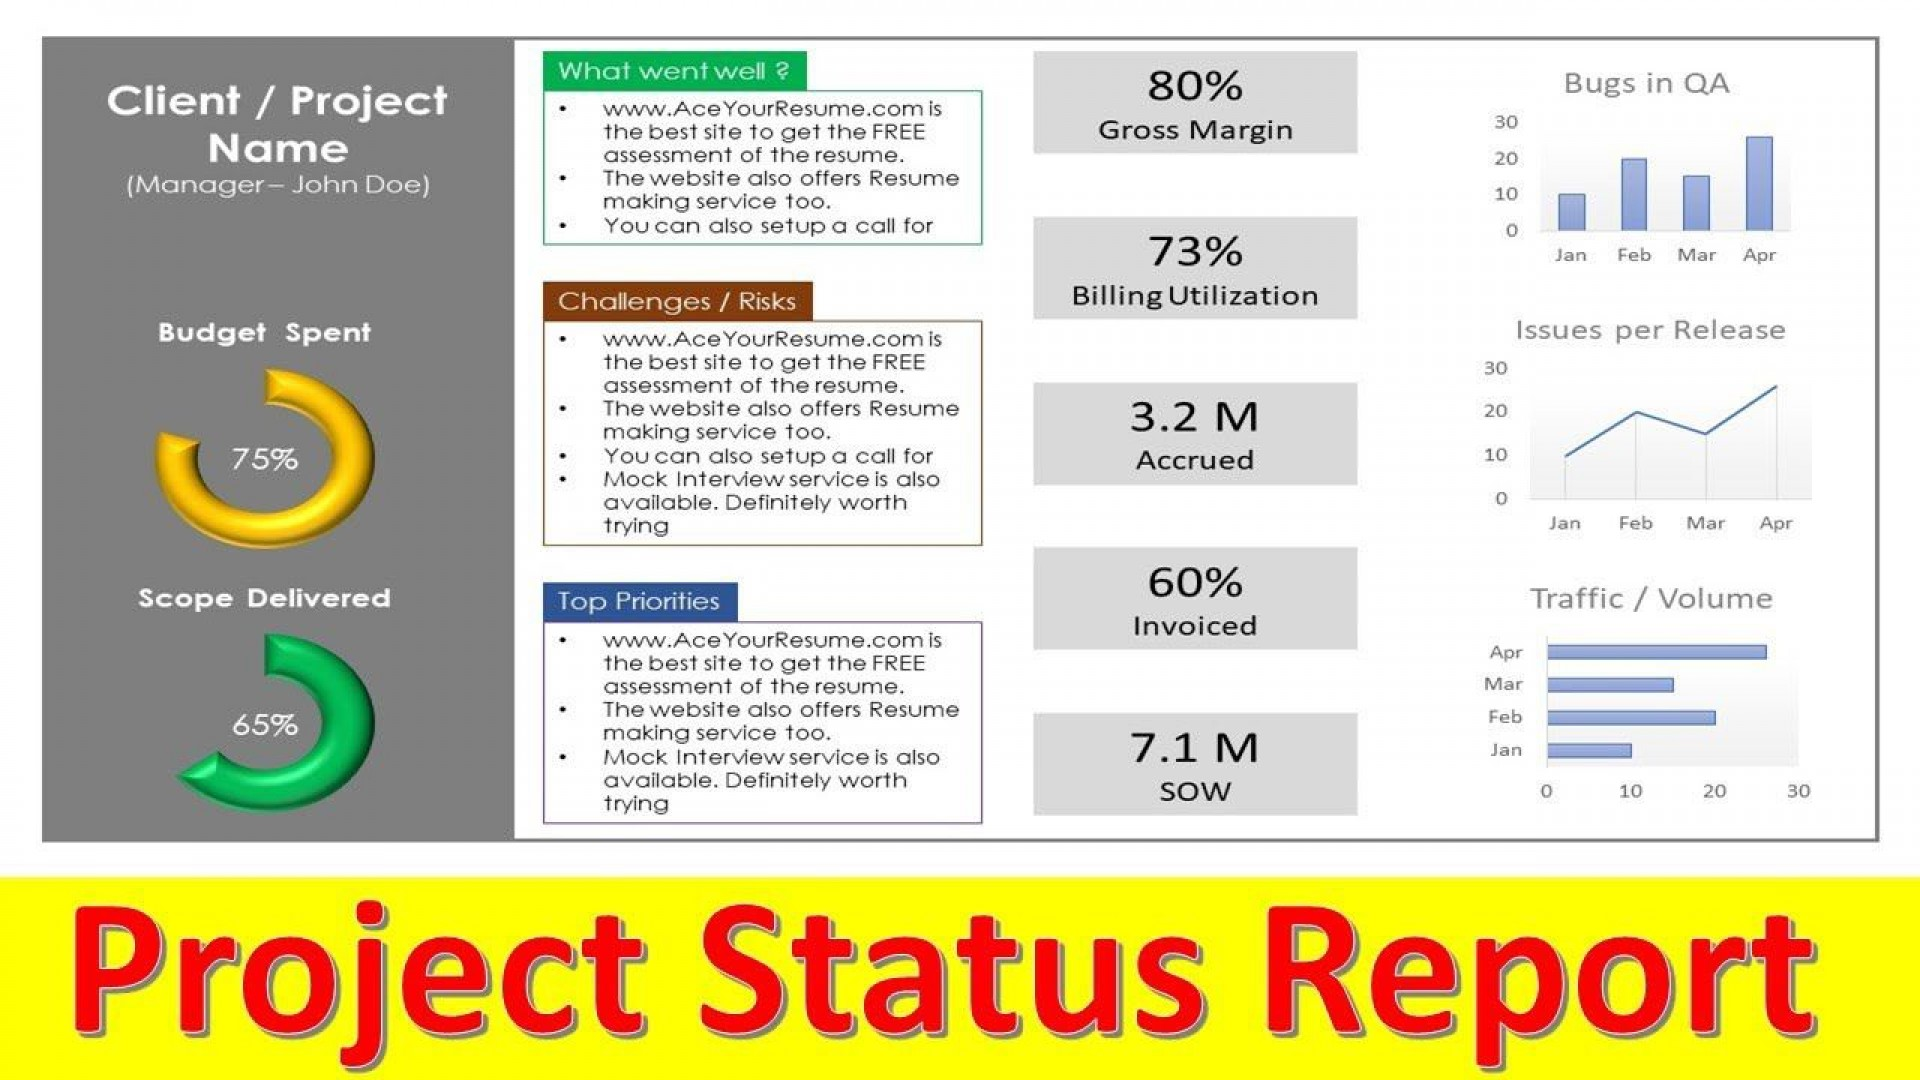 001 Imposing Project Management Statu Report Template Powerpoint High Definition  Template+powerpoint Ppt1920